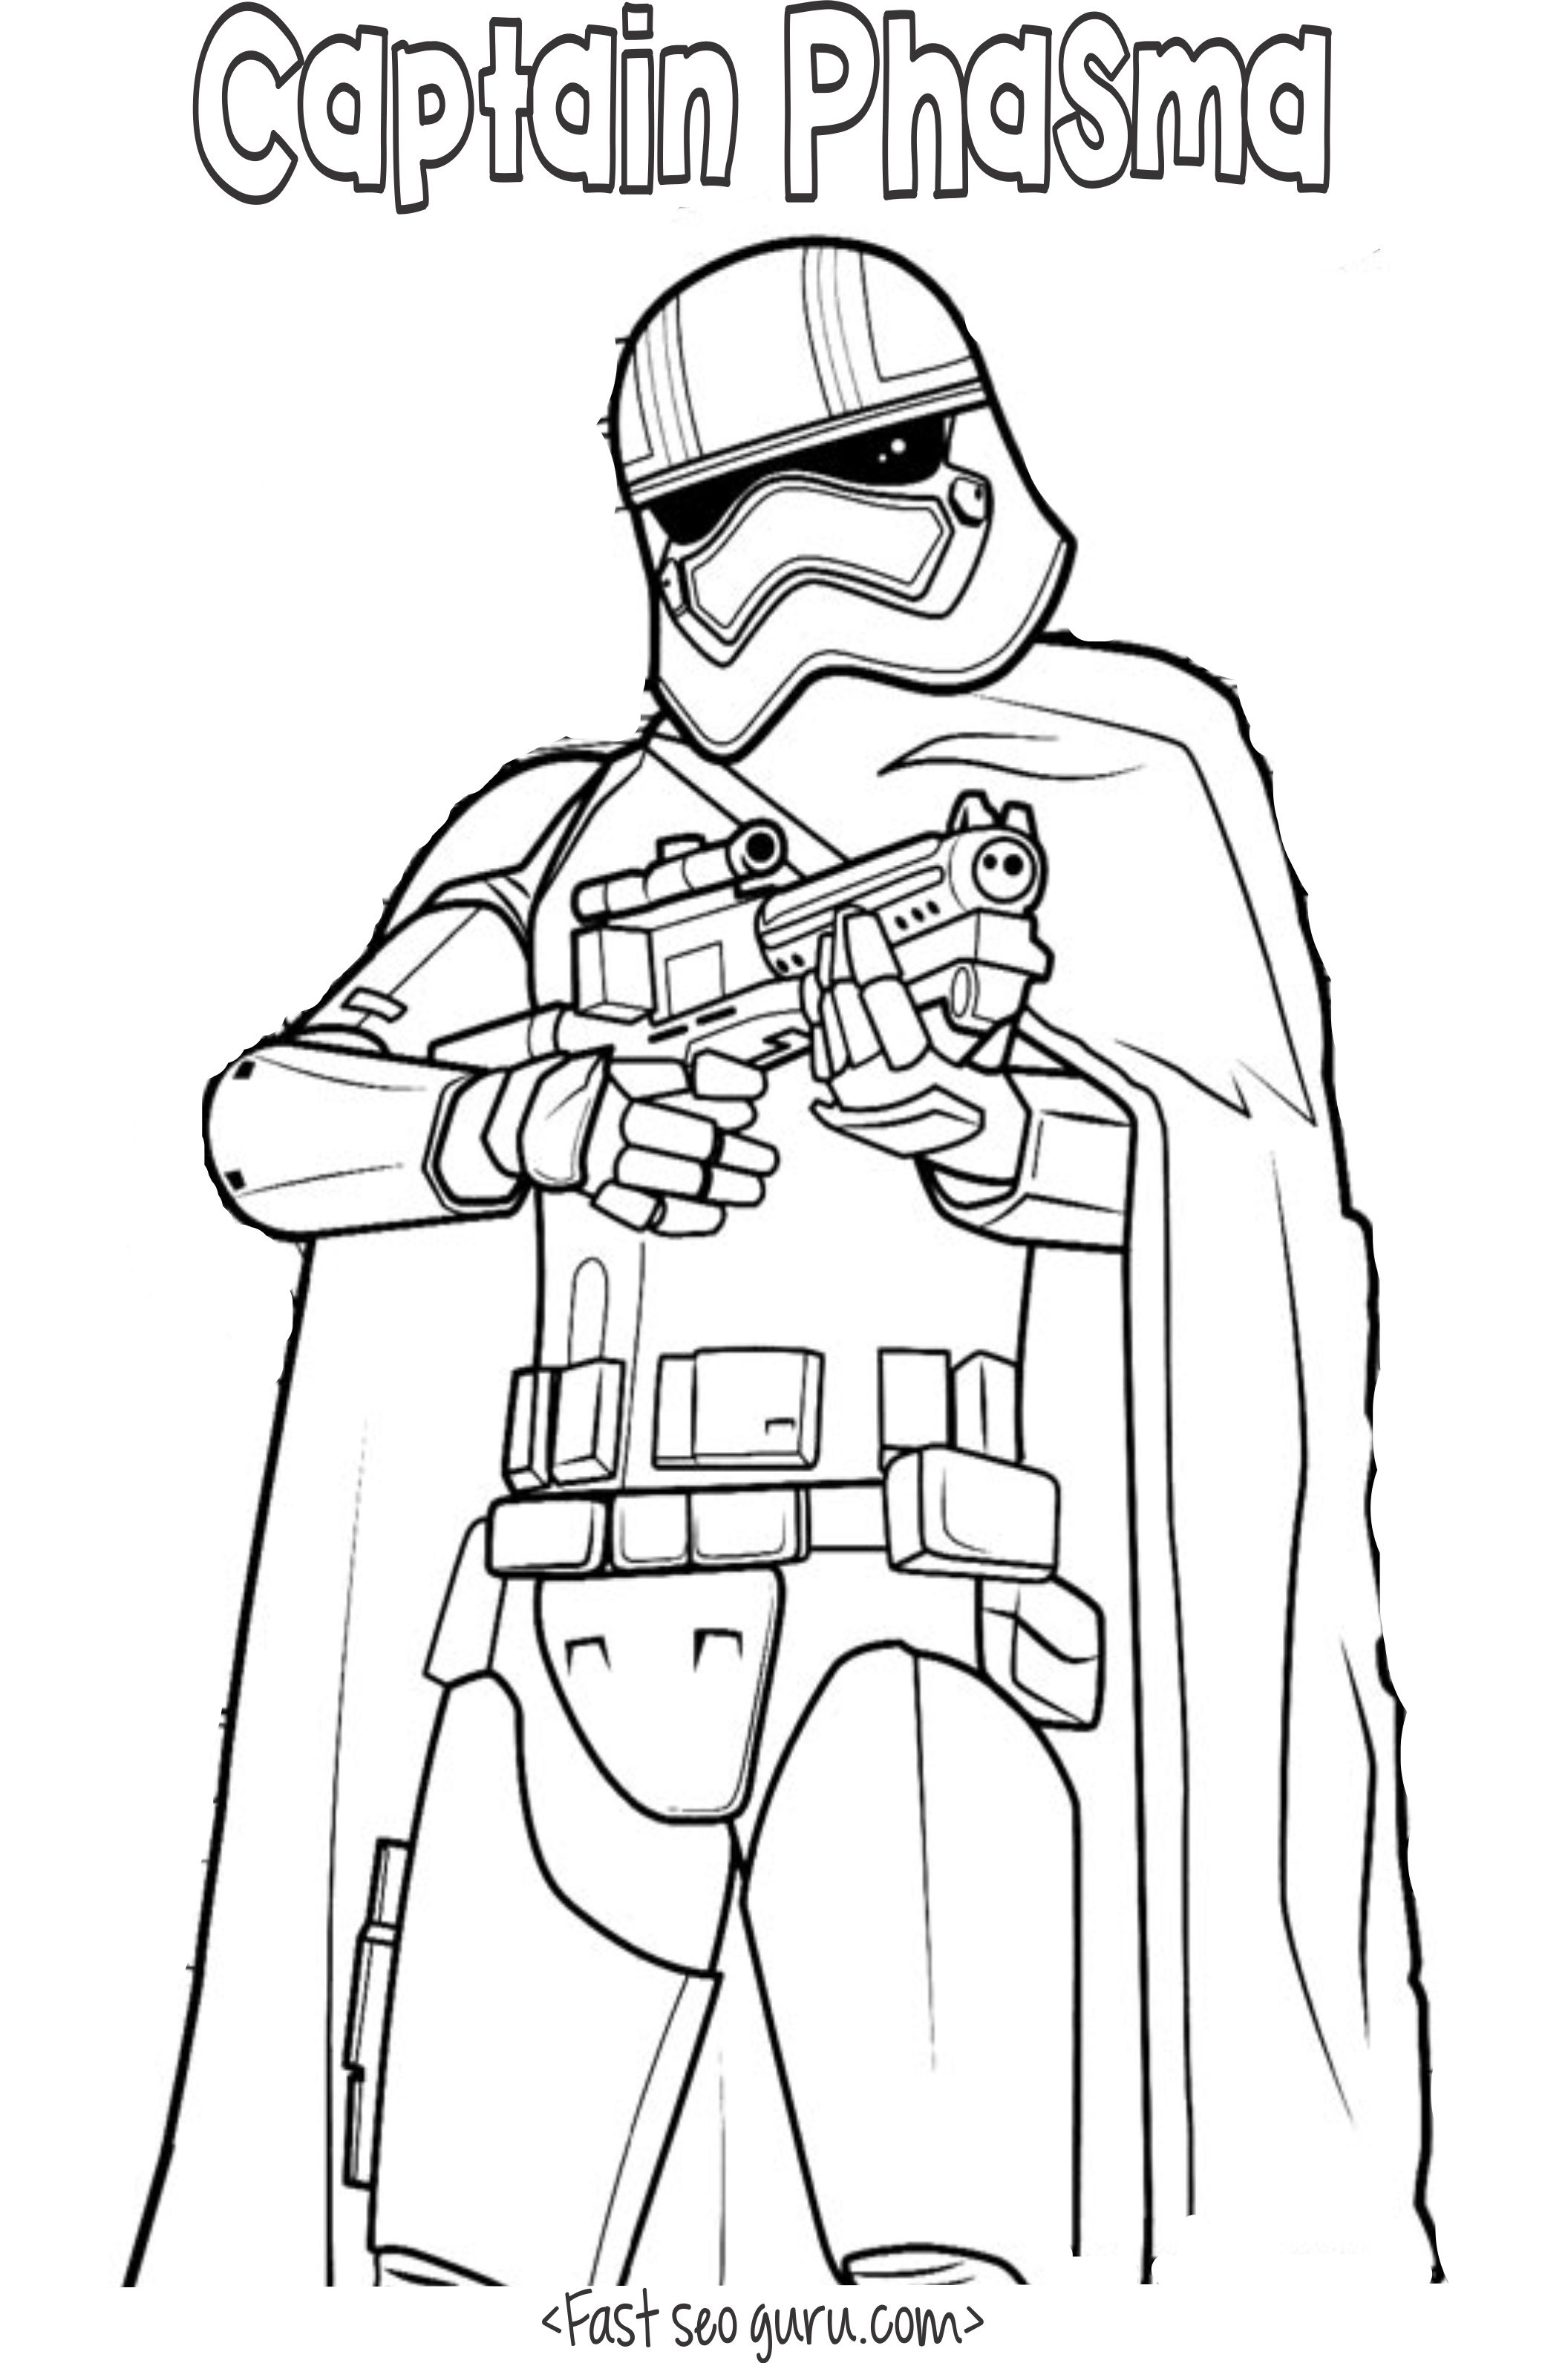 Star Wars 7 Coloring Pictures : Star Wars the force awakens captain phasma coloring pages